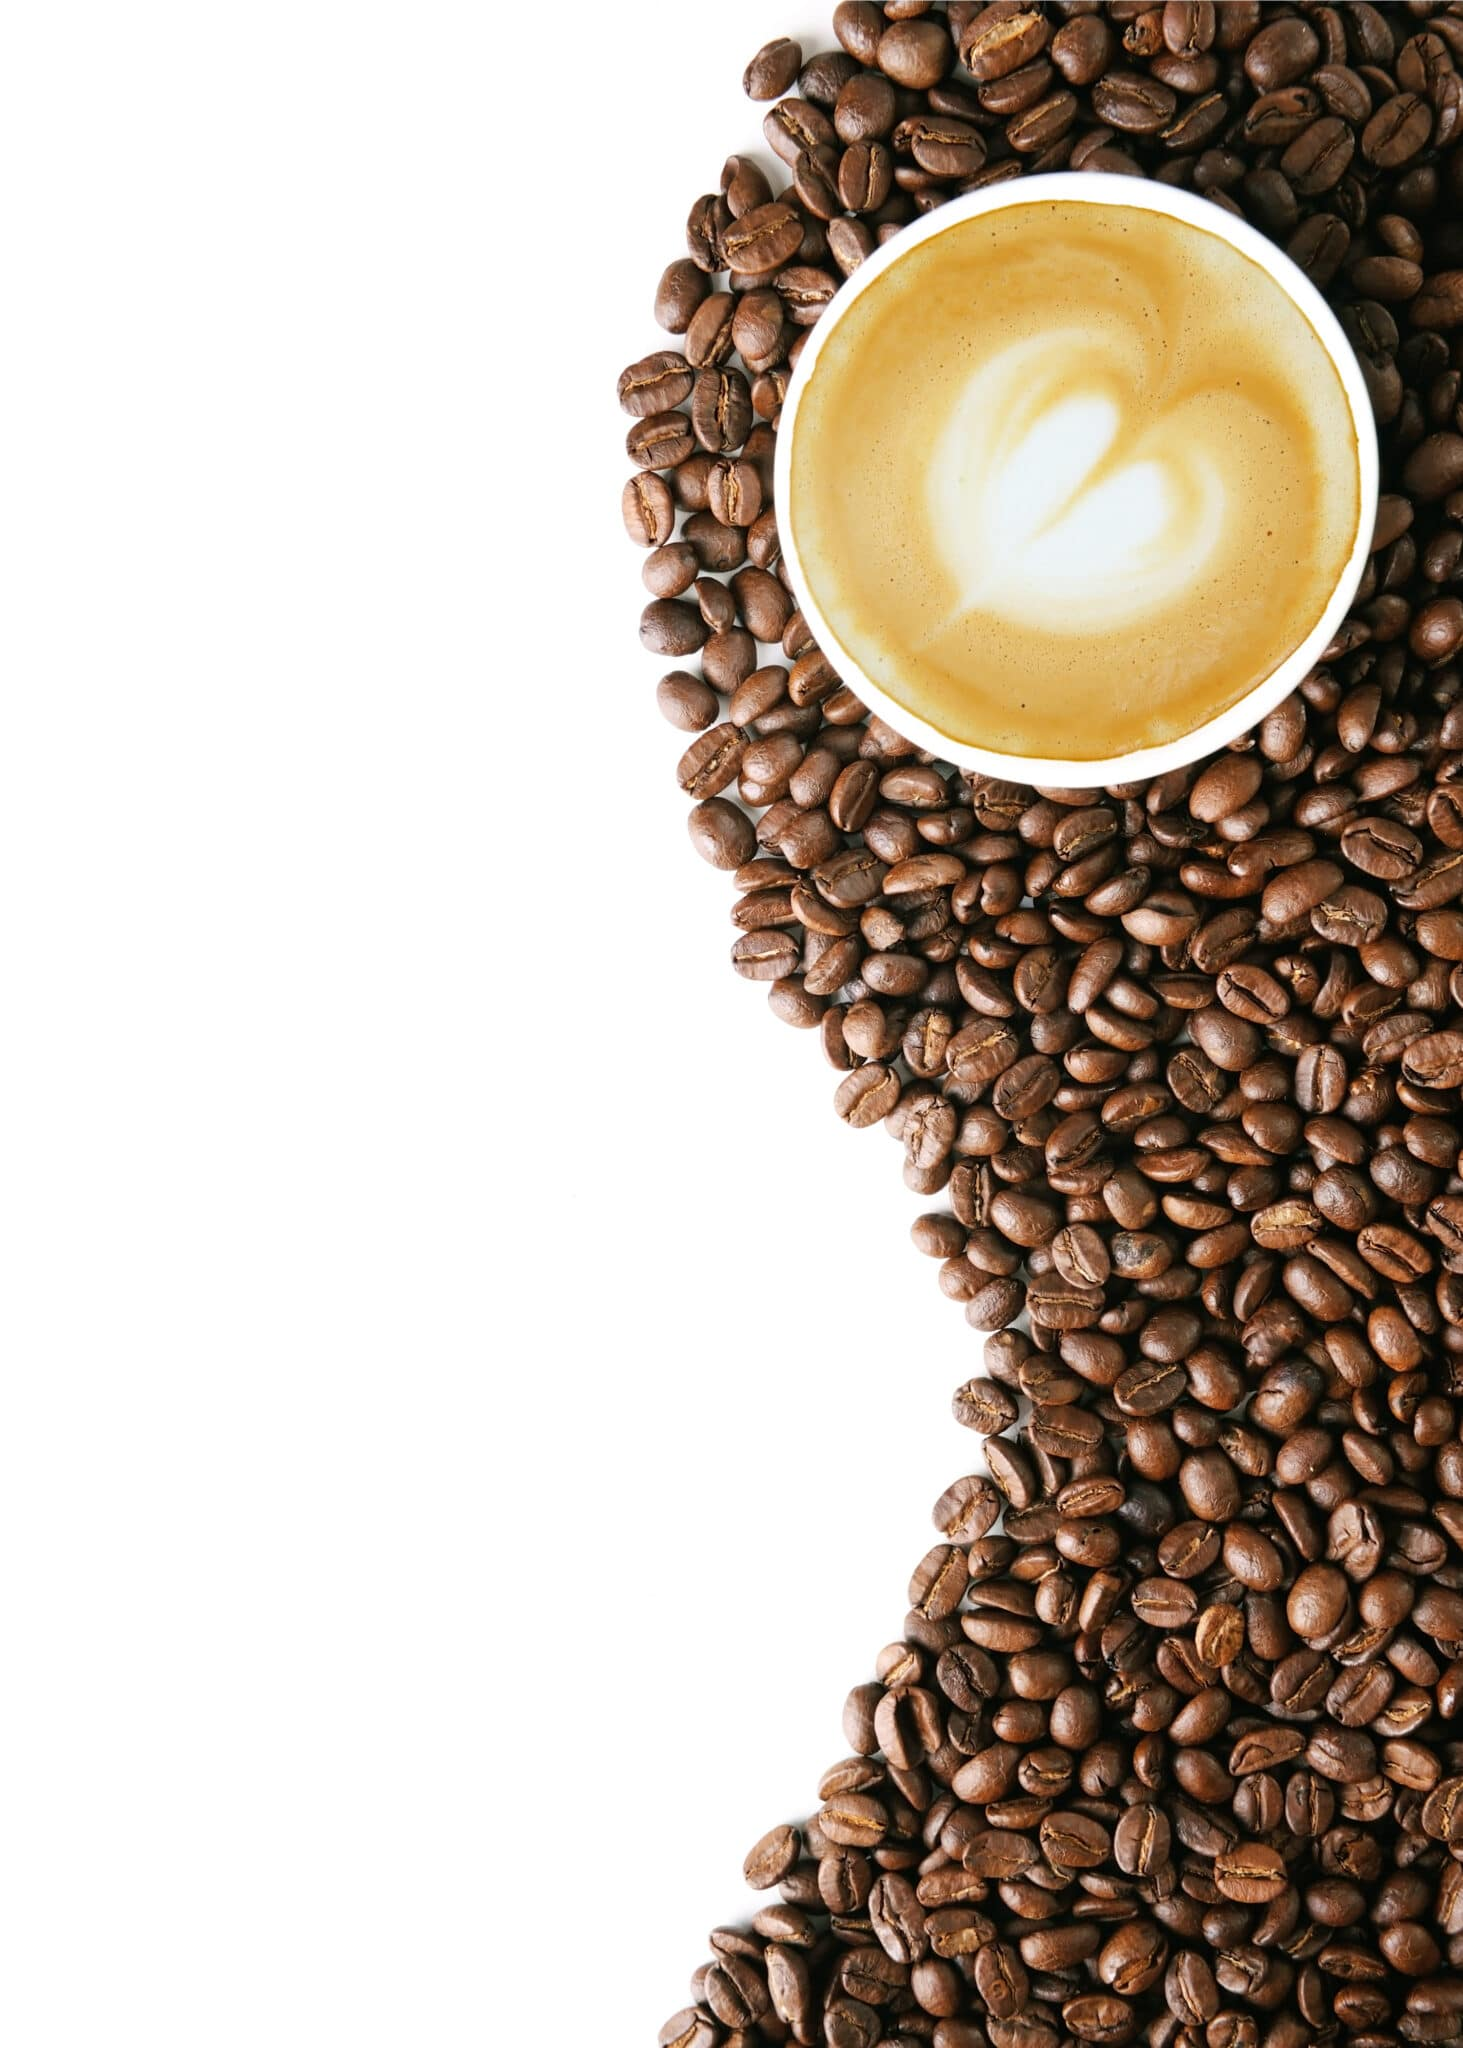 Coffee beans on a bright white table top with a cup of coffee with a white foam heart in the center.